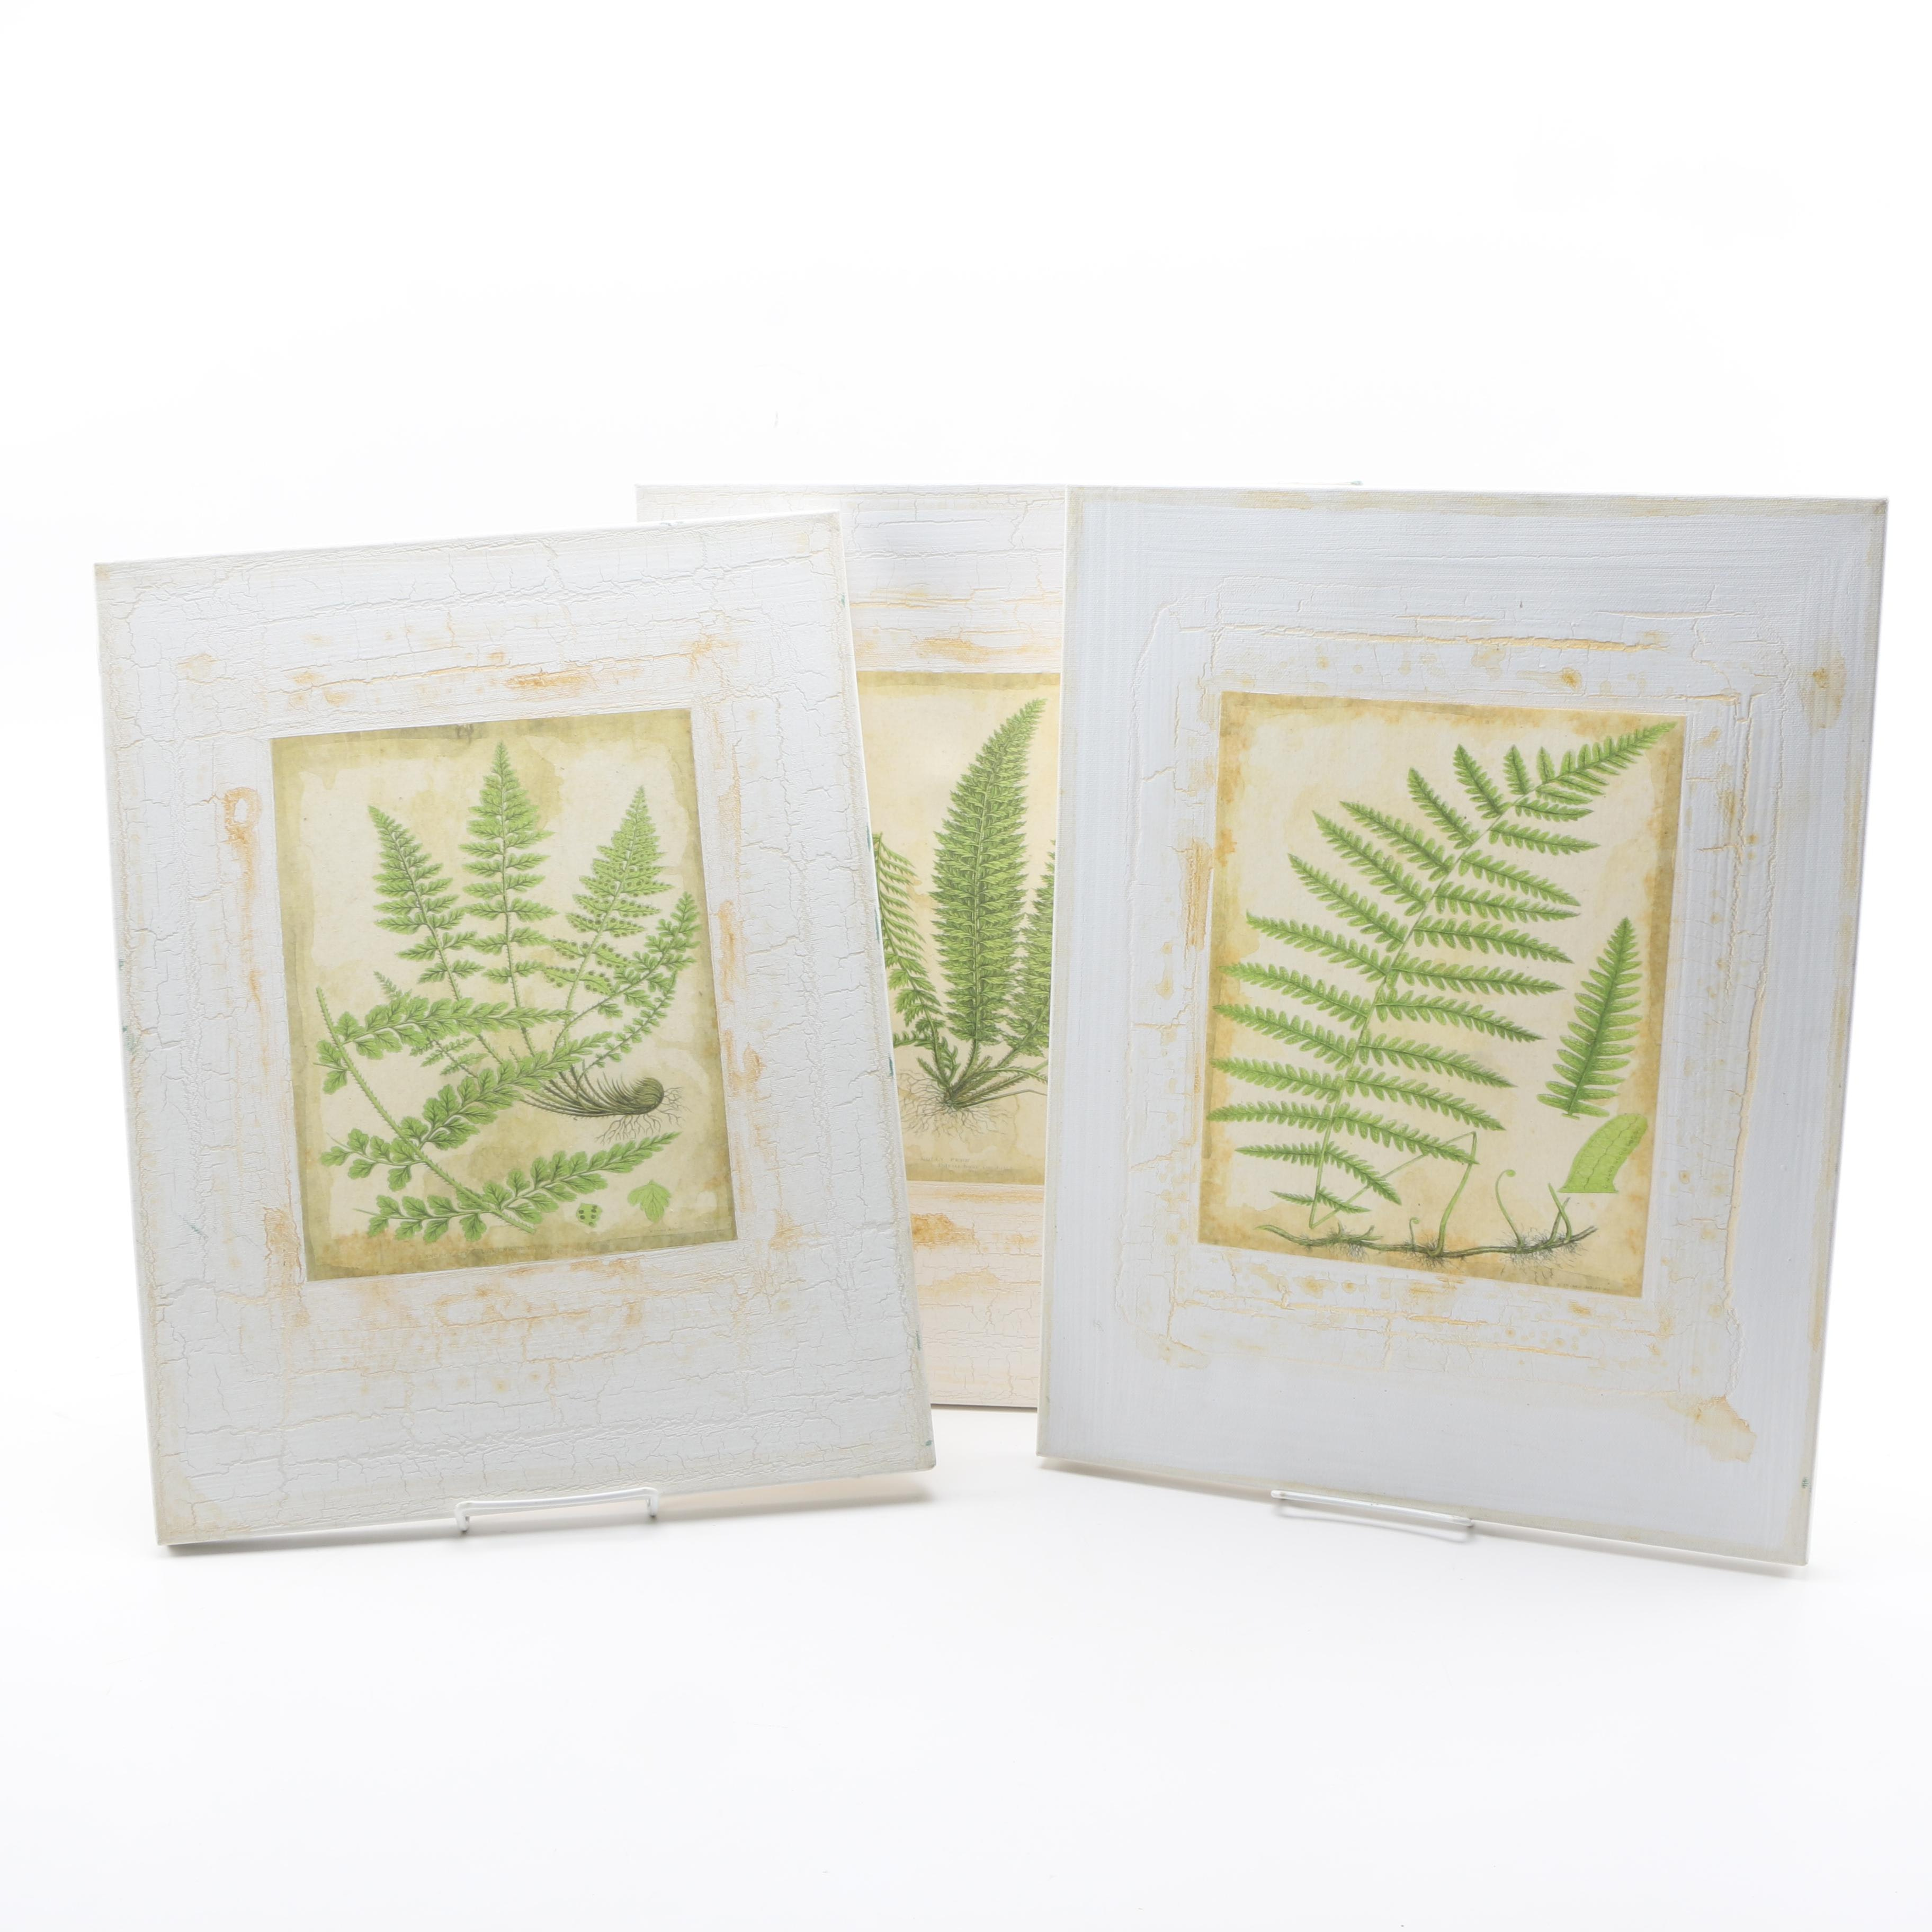 Decorative Vintage Style Giclee Prints on Paper Mounted on Canvas of Fern Fronds